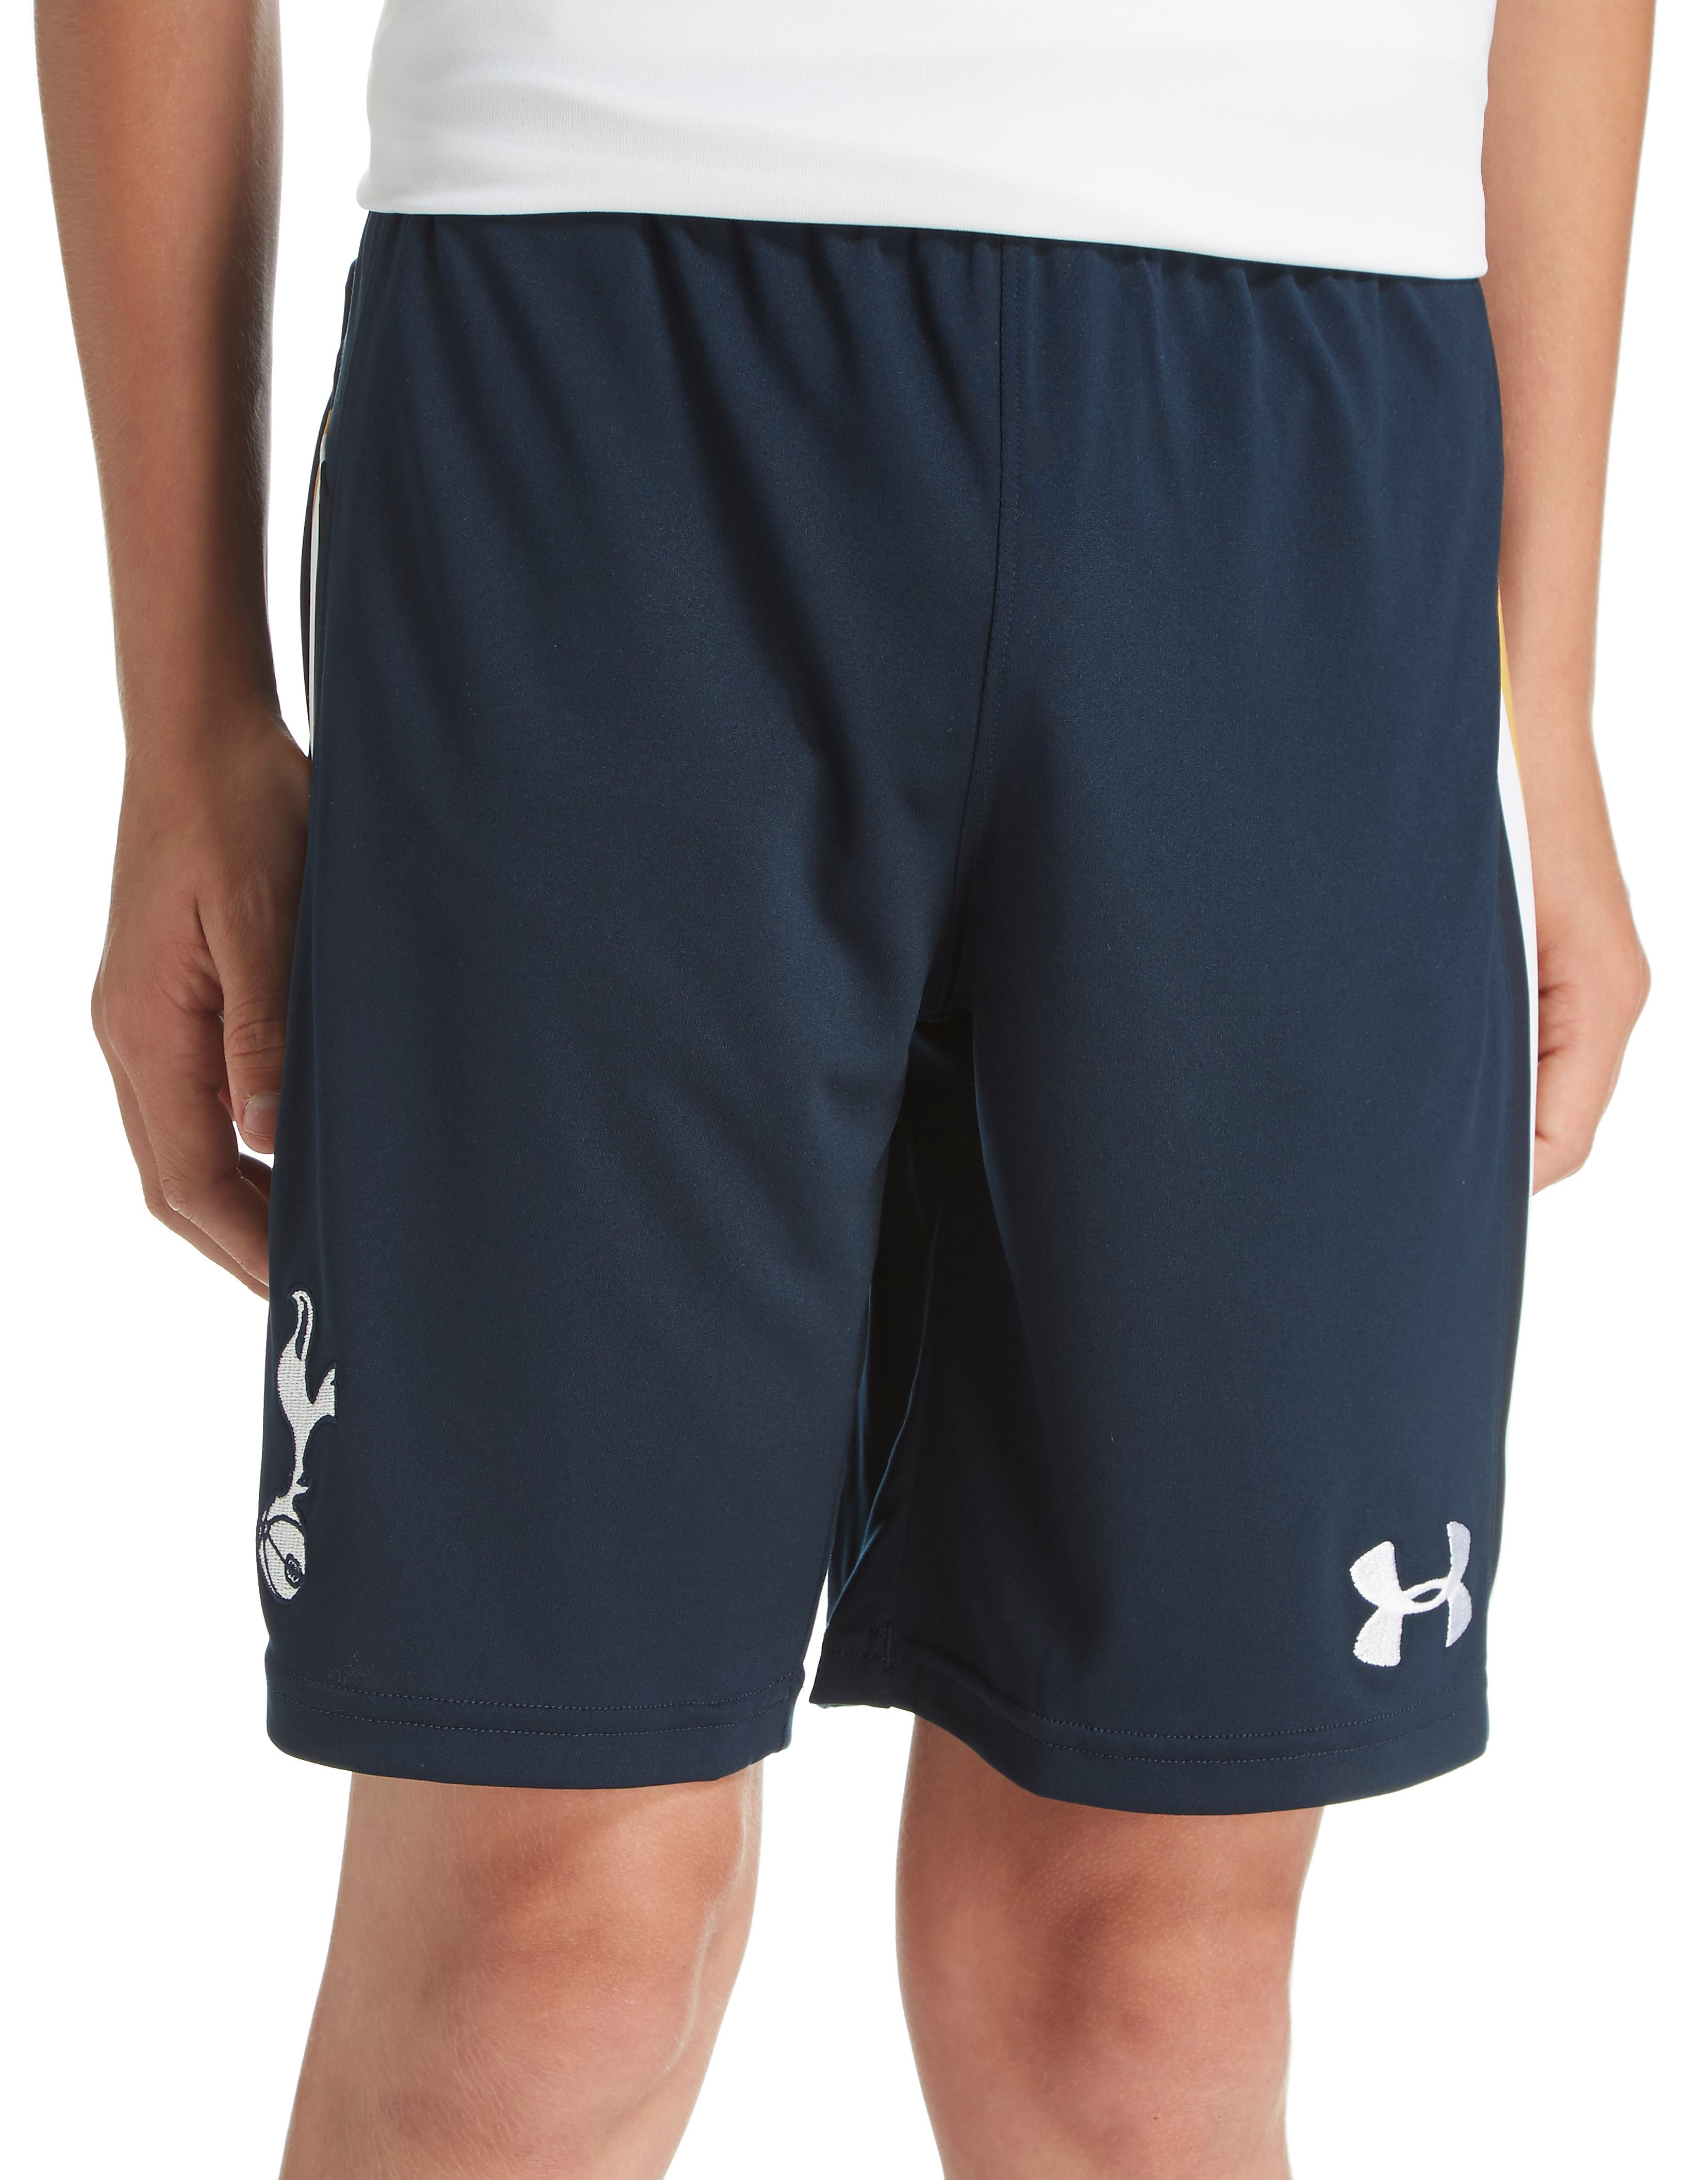 Under Armour Tottenham Hotspur FC 2016/17 Home Shorts Junior